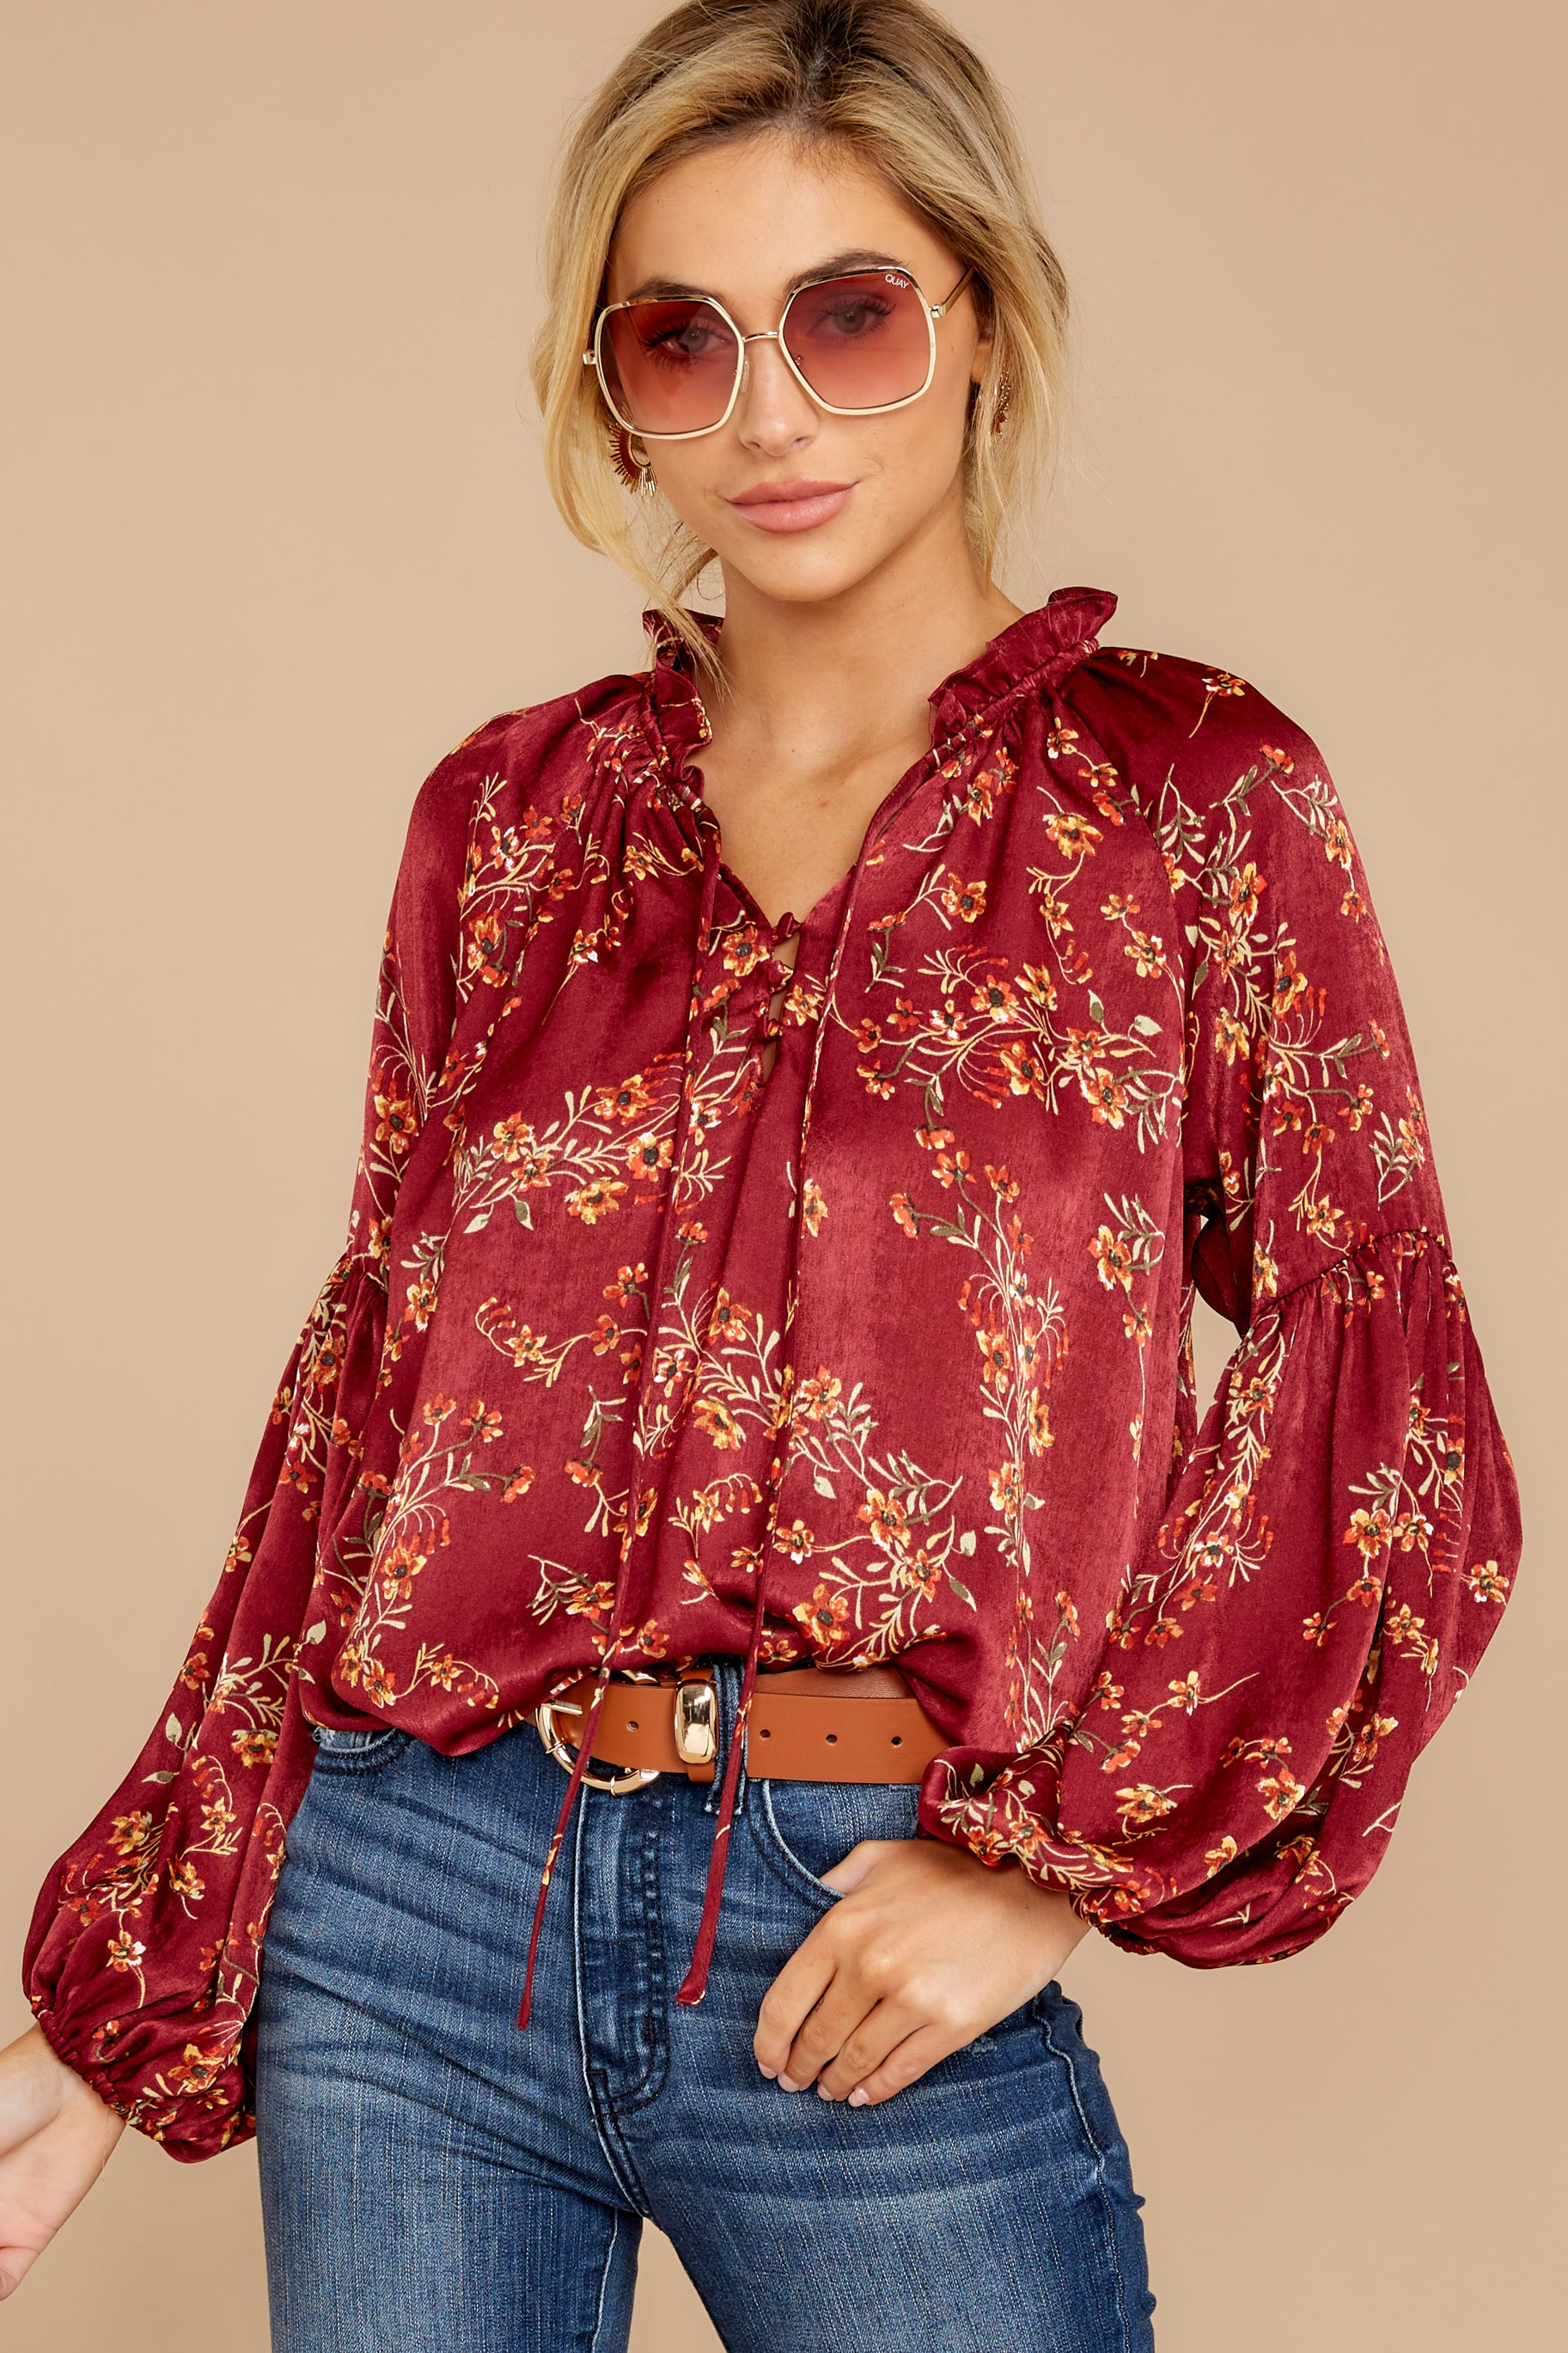 2 Wake Up The Wonder Burgundy Floral Print Top at reddress.com